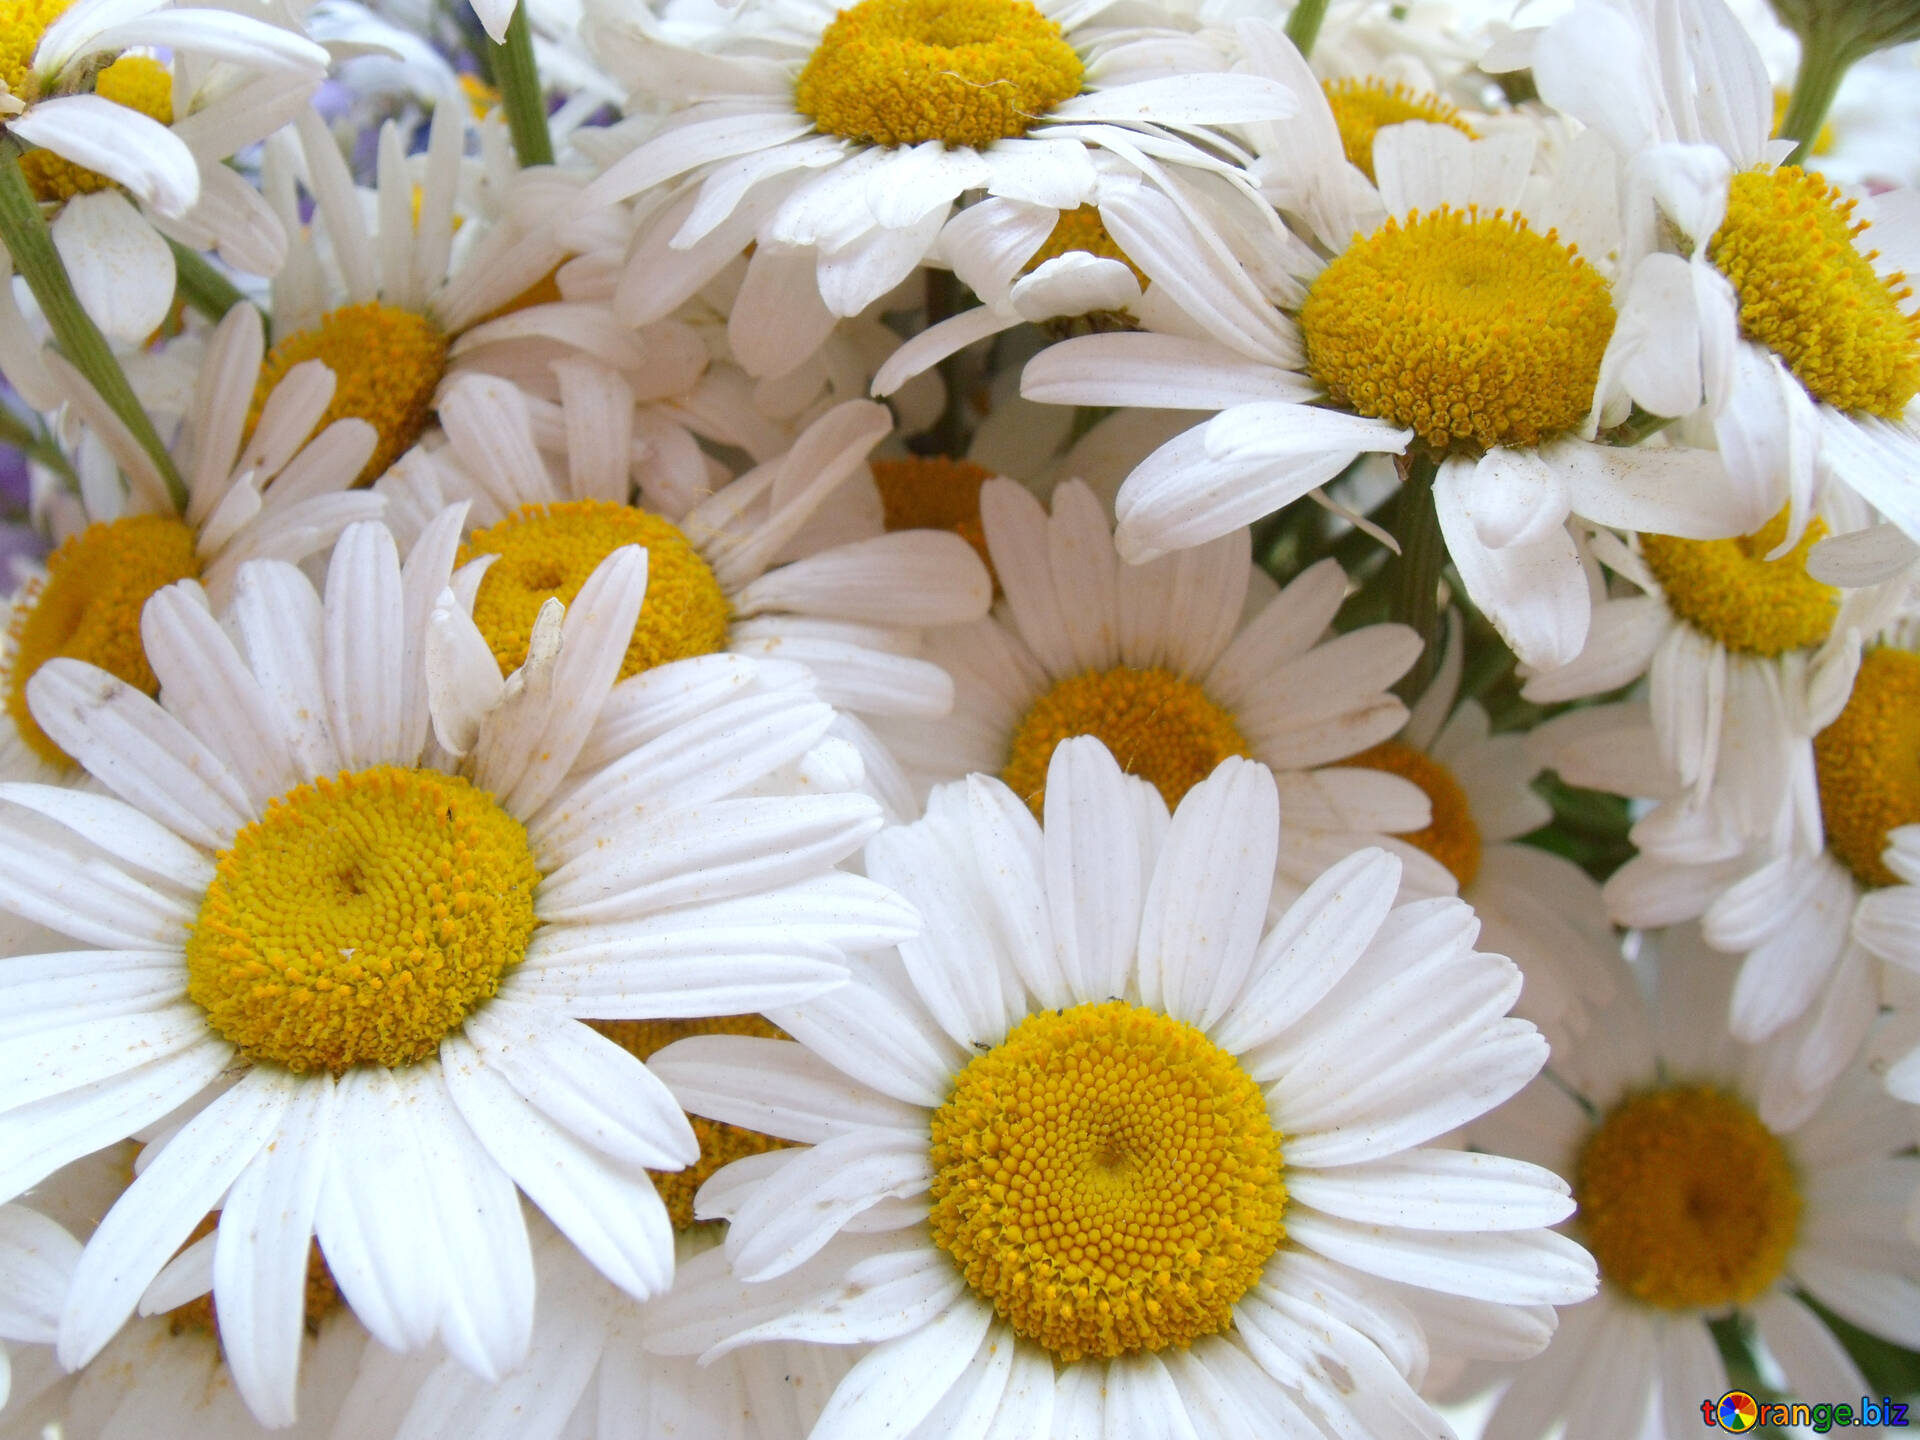 Chamomile flowers daisies flower 9807 download free image daisies in hd wallpaper size 1920px izmirmasajfo